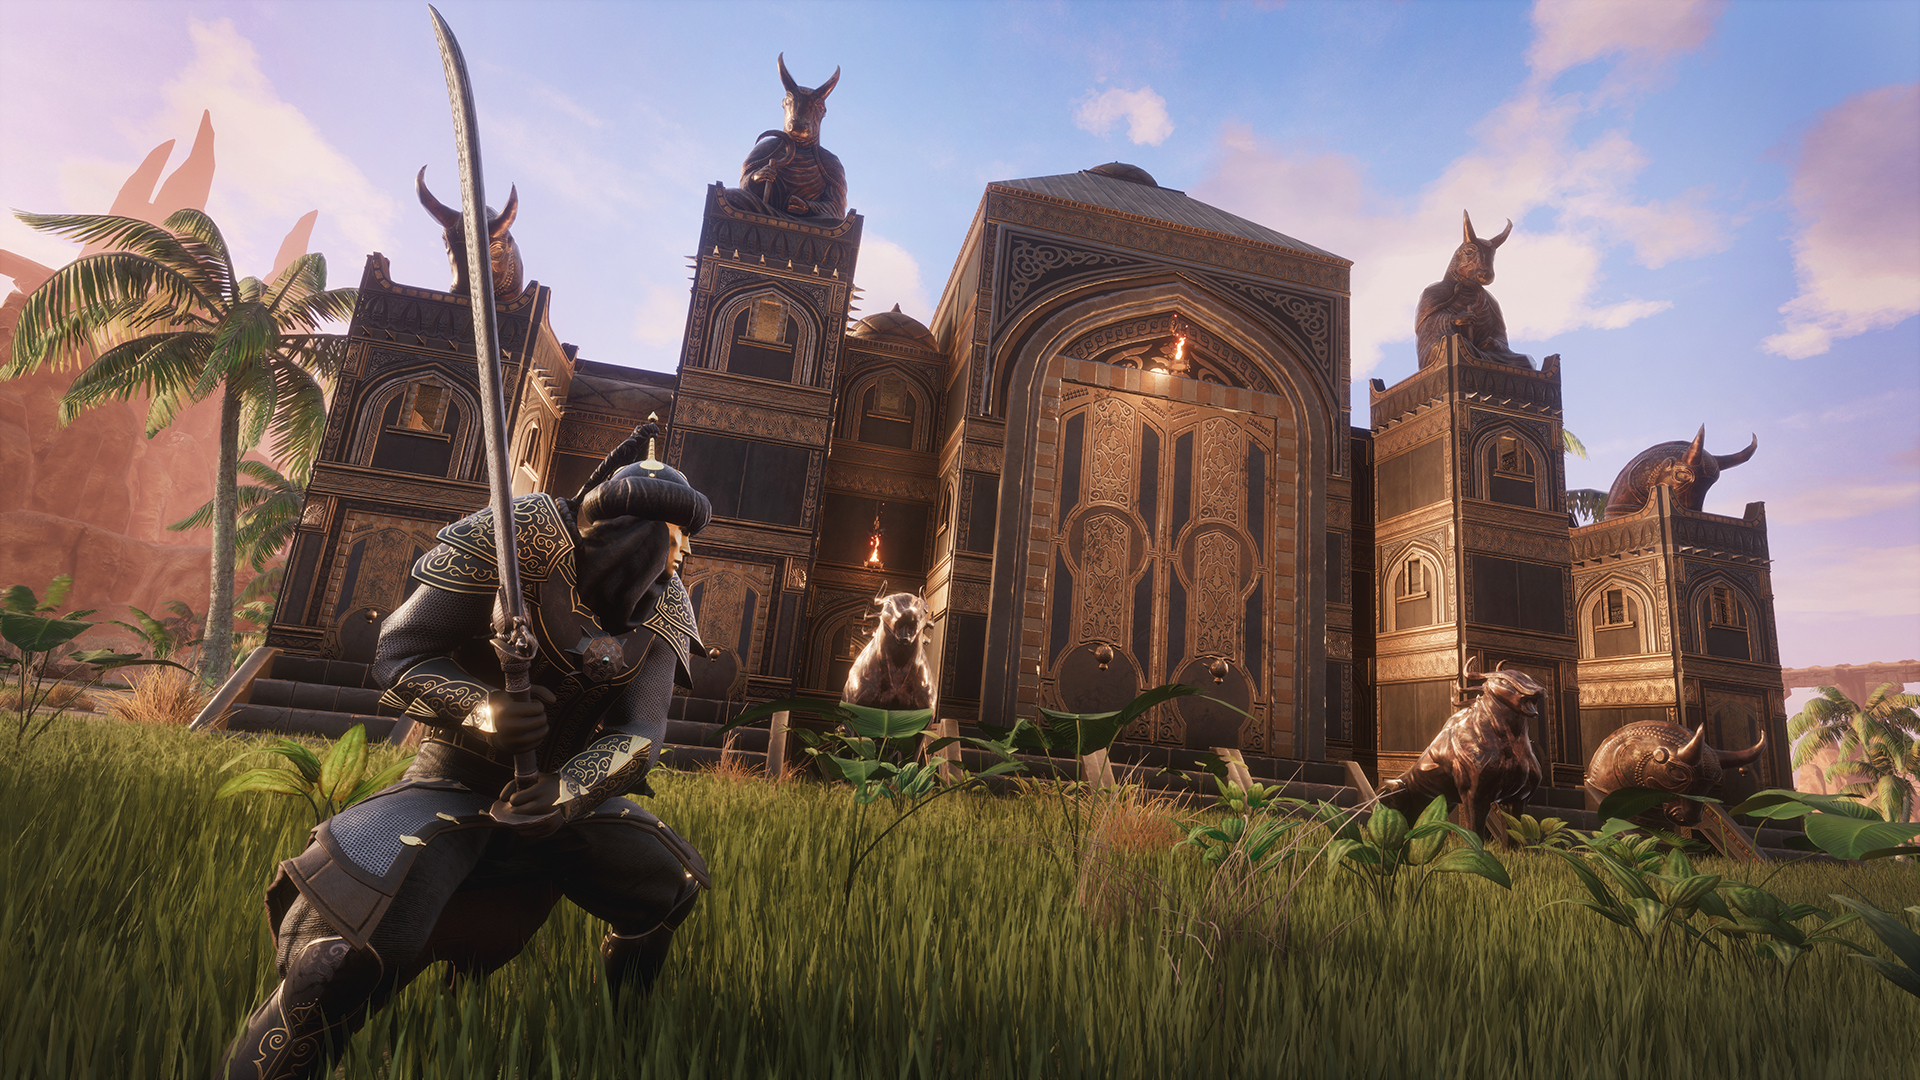 Conan Exiles :: PC Patch (05 02 2019) - Bug fixes and optimizations